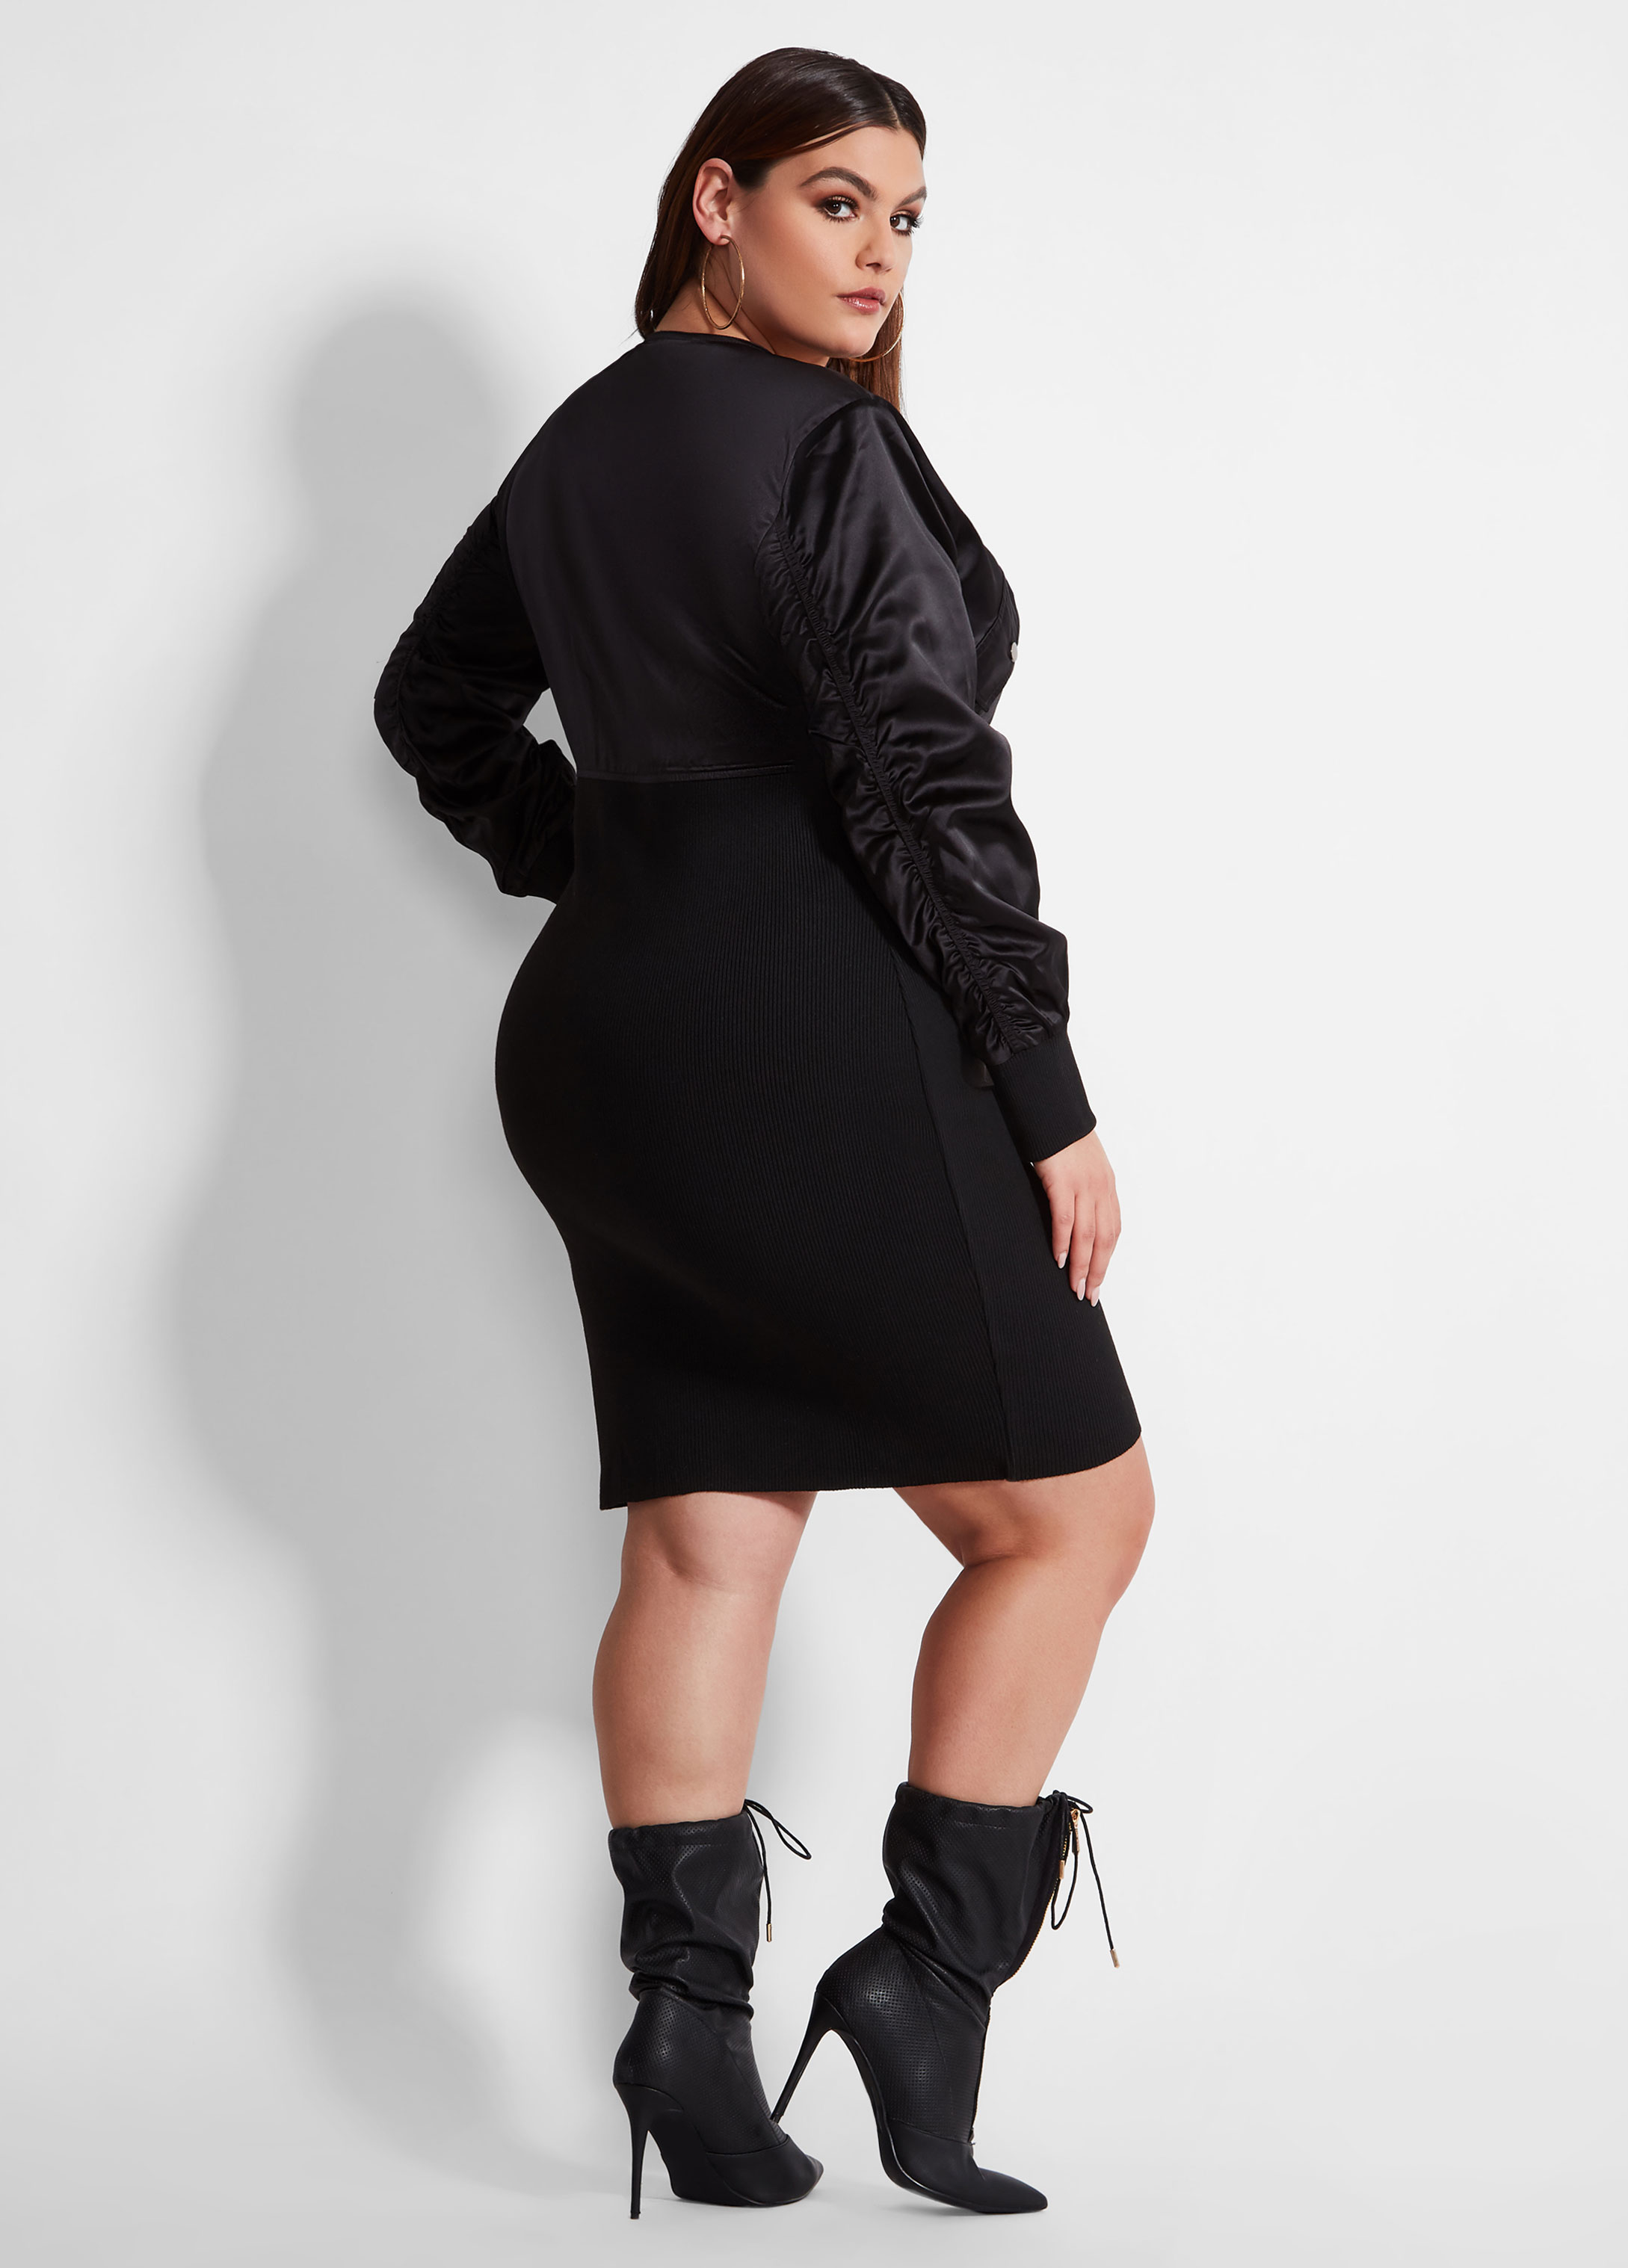 La La Anthony Is Launching A Plus Size Collection With Ashley